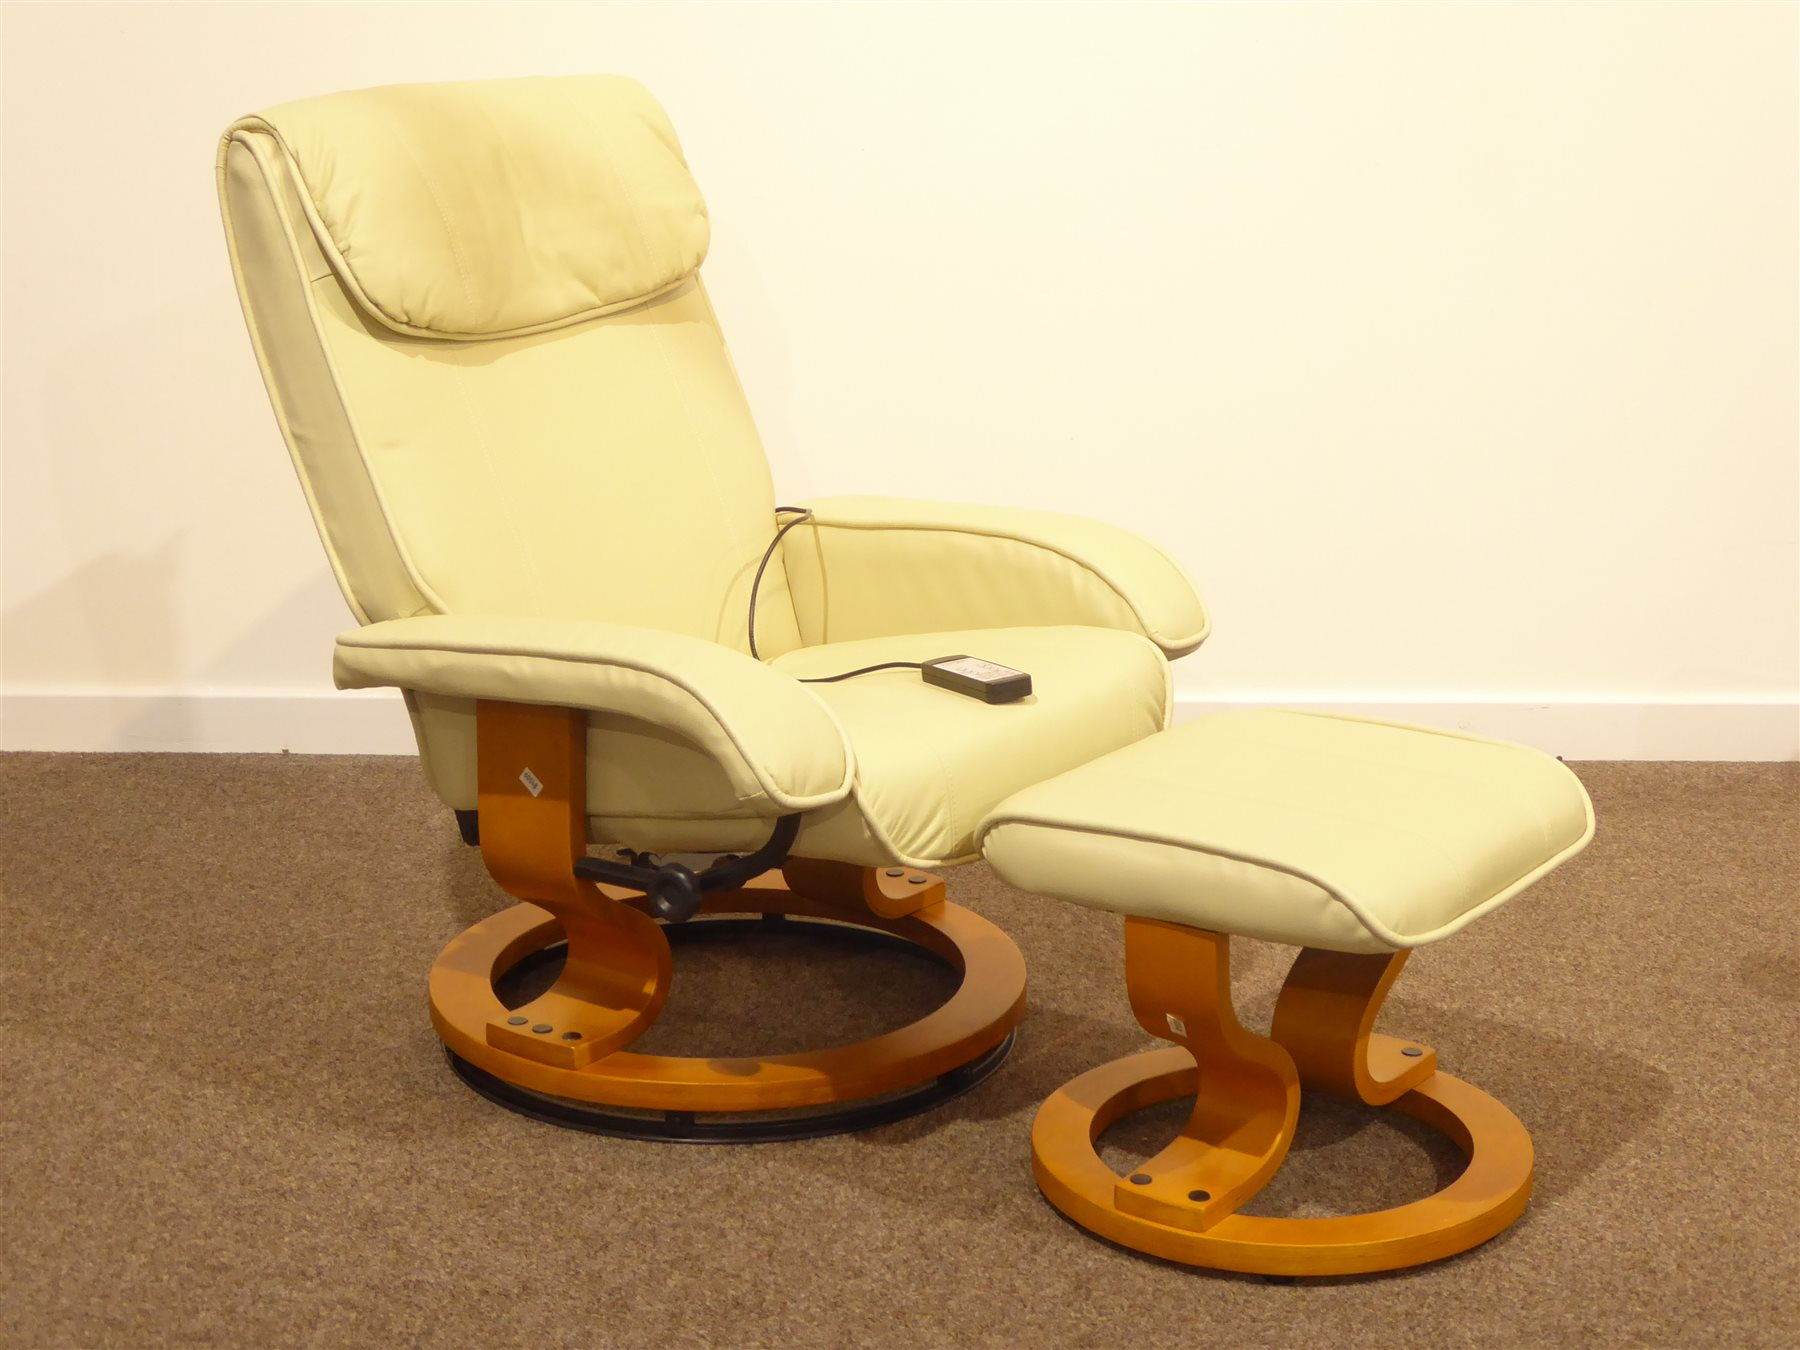 Scotts And Co Reclining Armchair With Massage Unit And Matching Stool Upholstered In Cream Leather Antiques Fine Art Jewellery Interiors